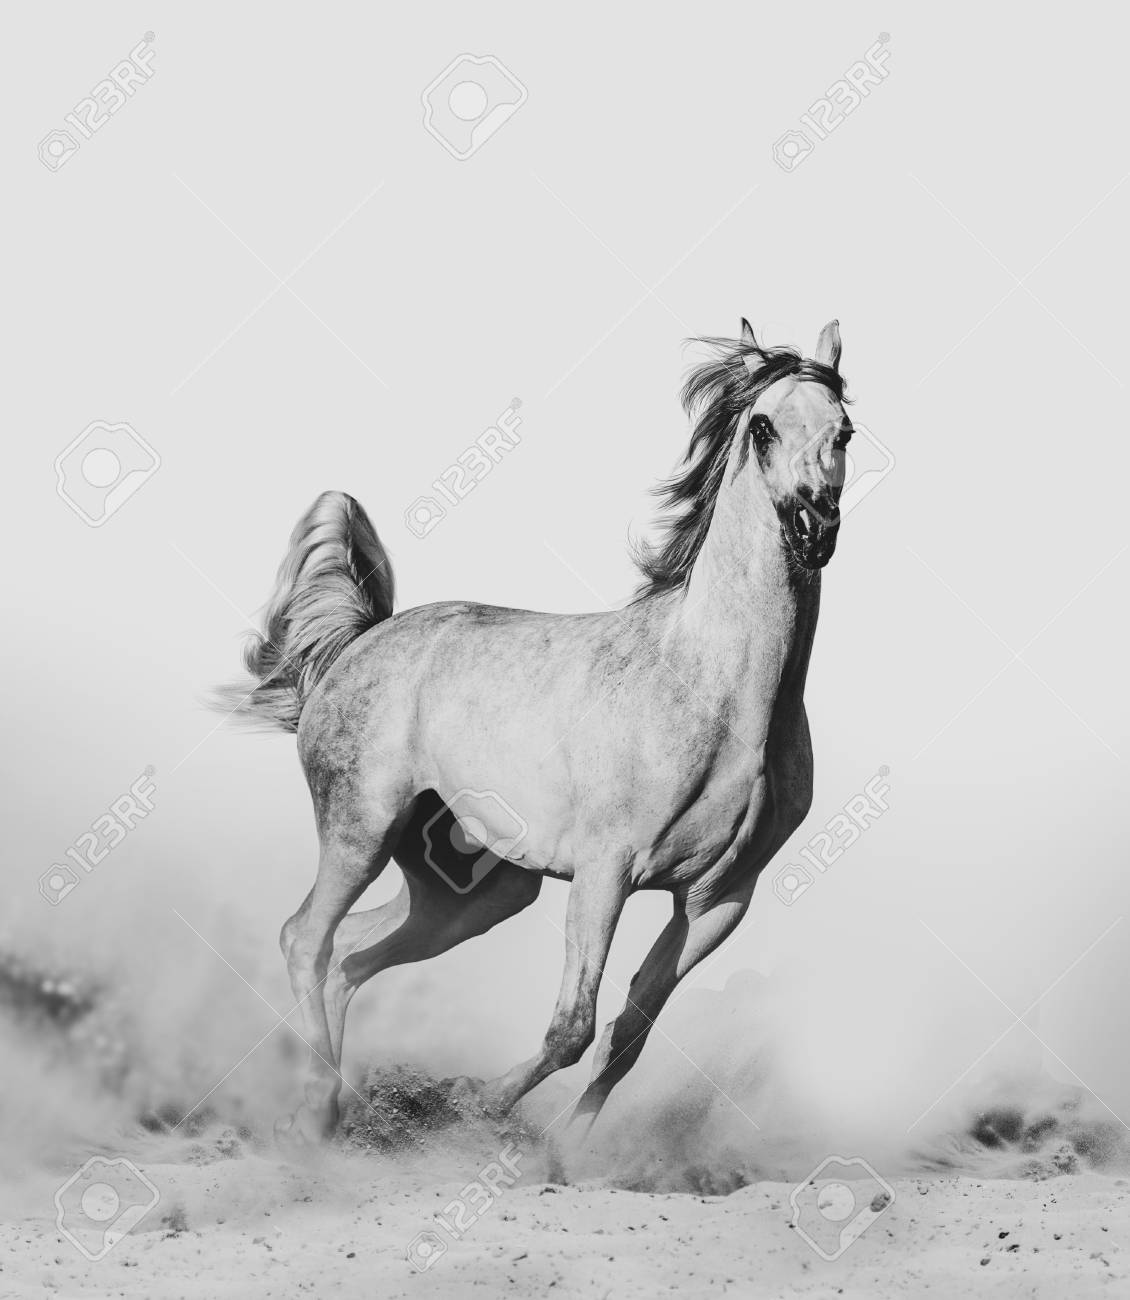 Beautiful Arabian Horse In Desert Runninf Wild Stock Photo Picture And Royalty Free Image Image 118975375